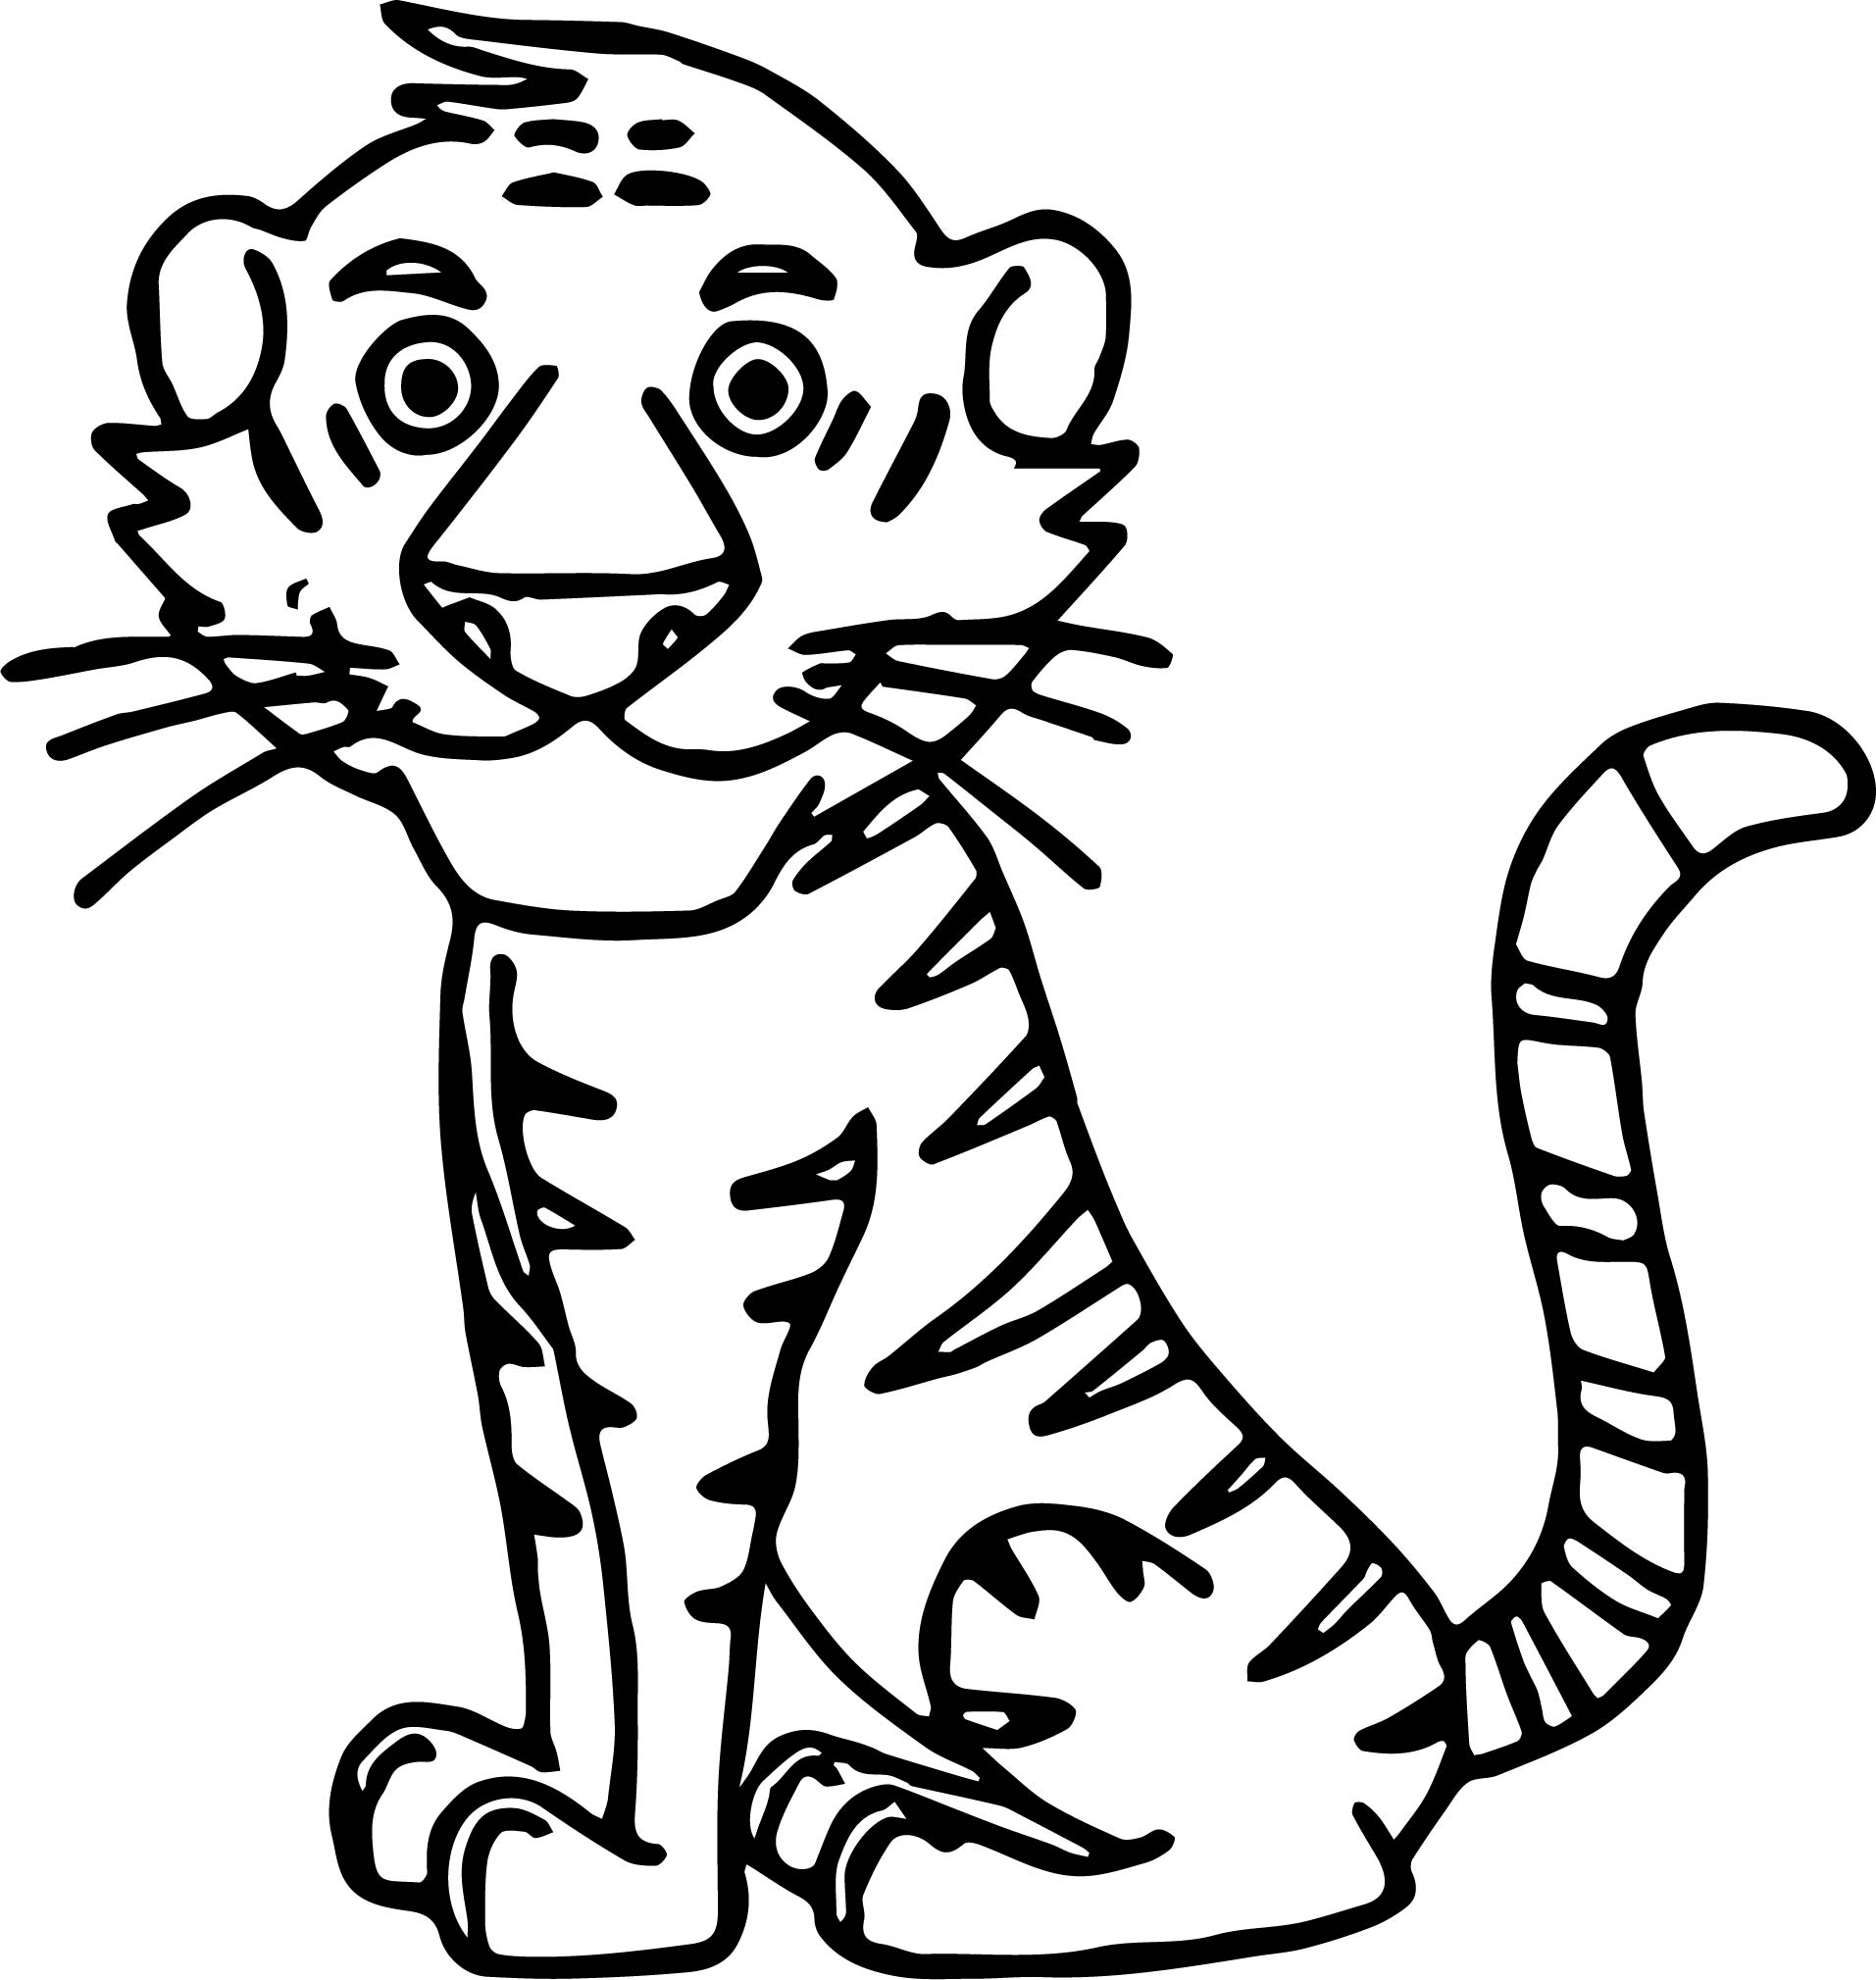 Tiger Sitdown Coloring Page